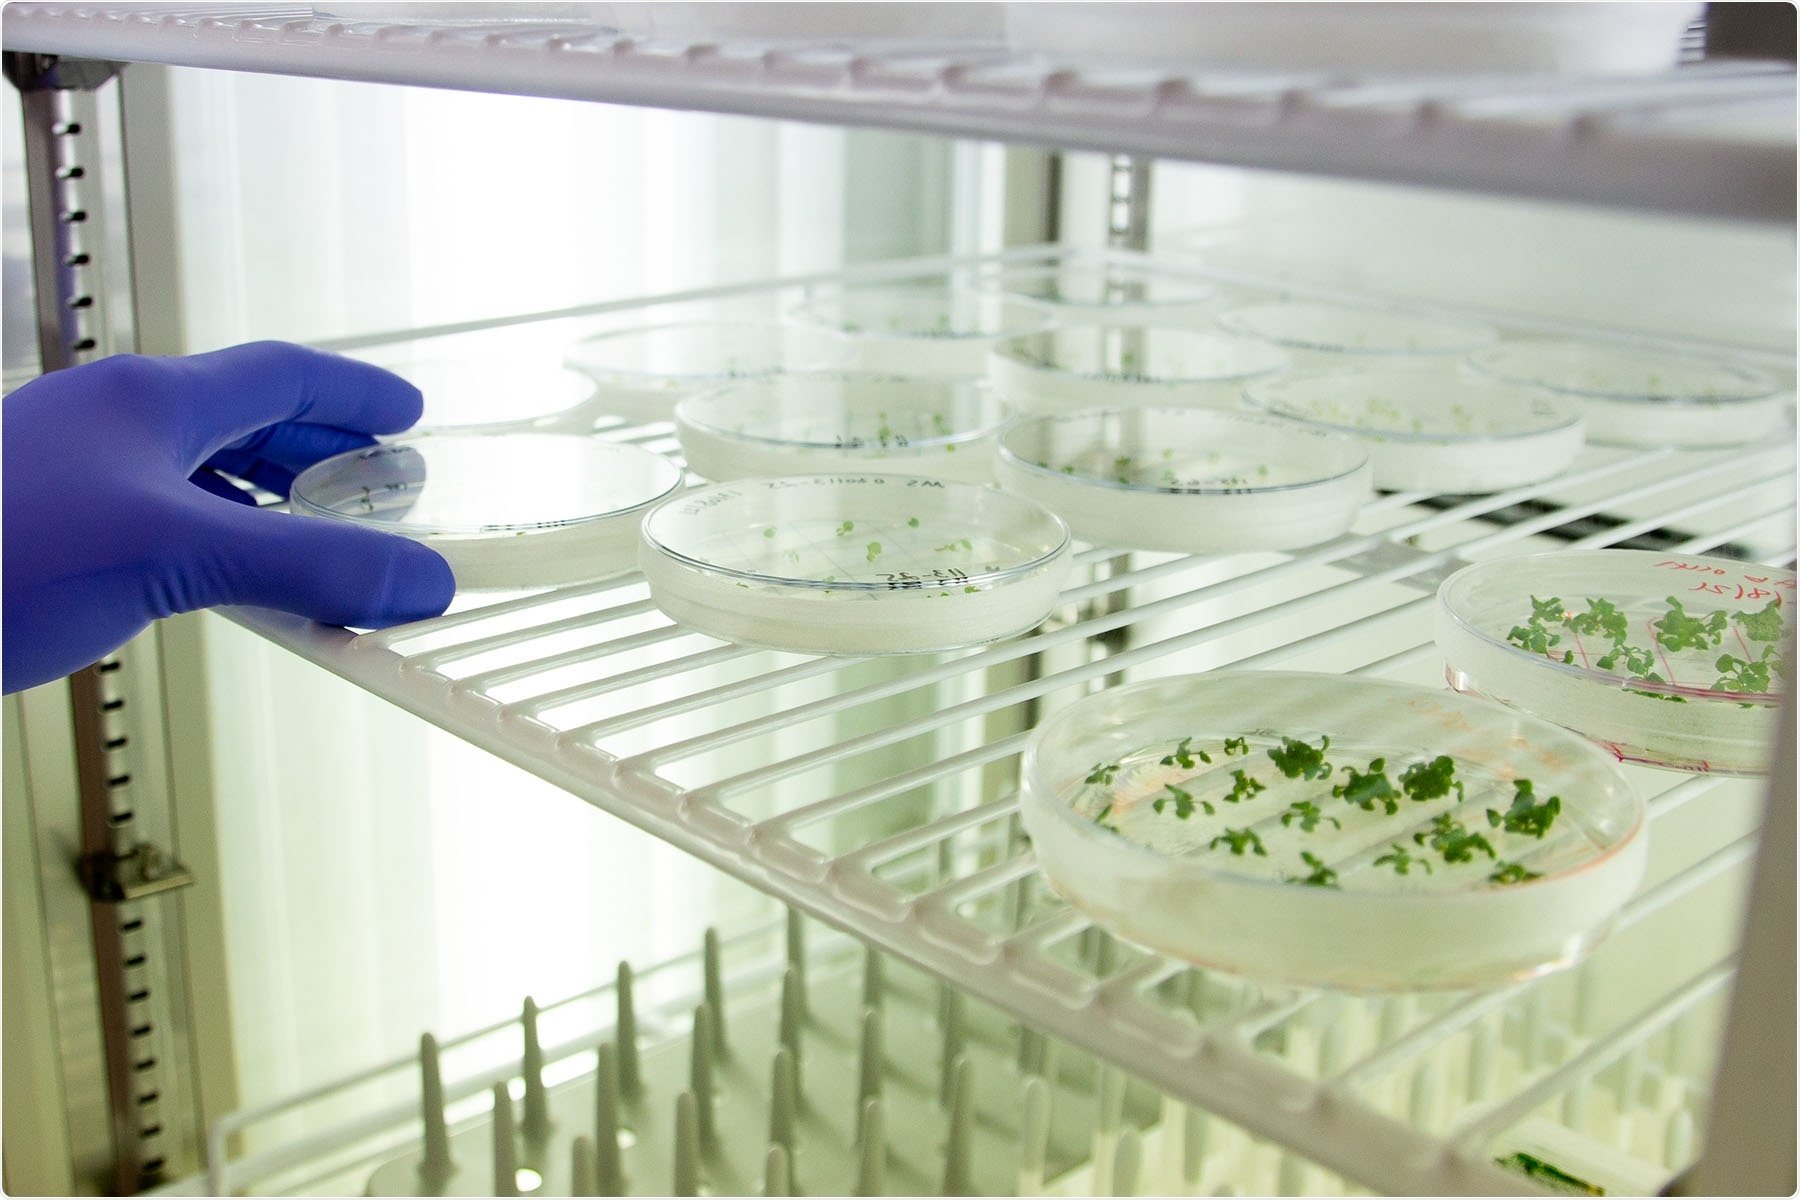 Scientists emphasize the need for commercialization in gene editing research